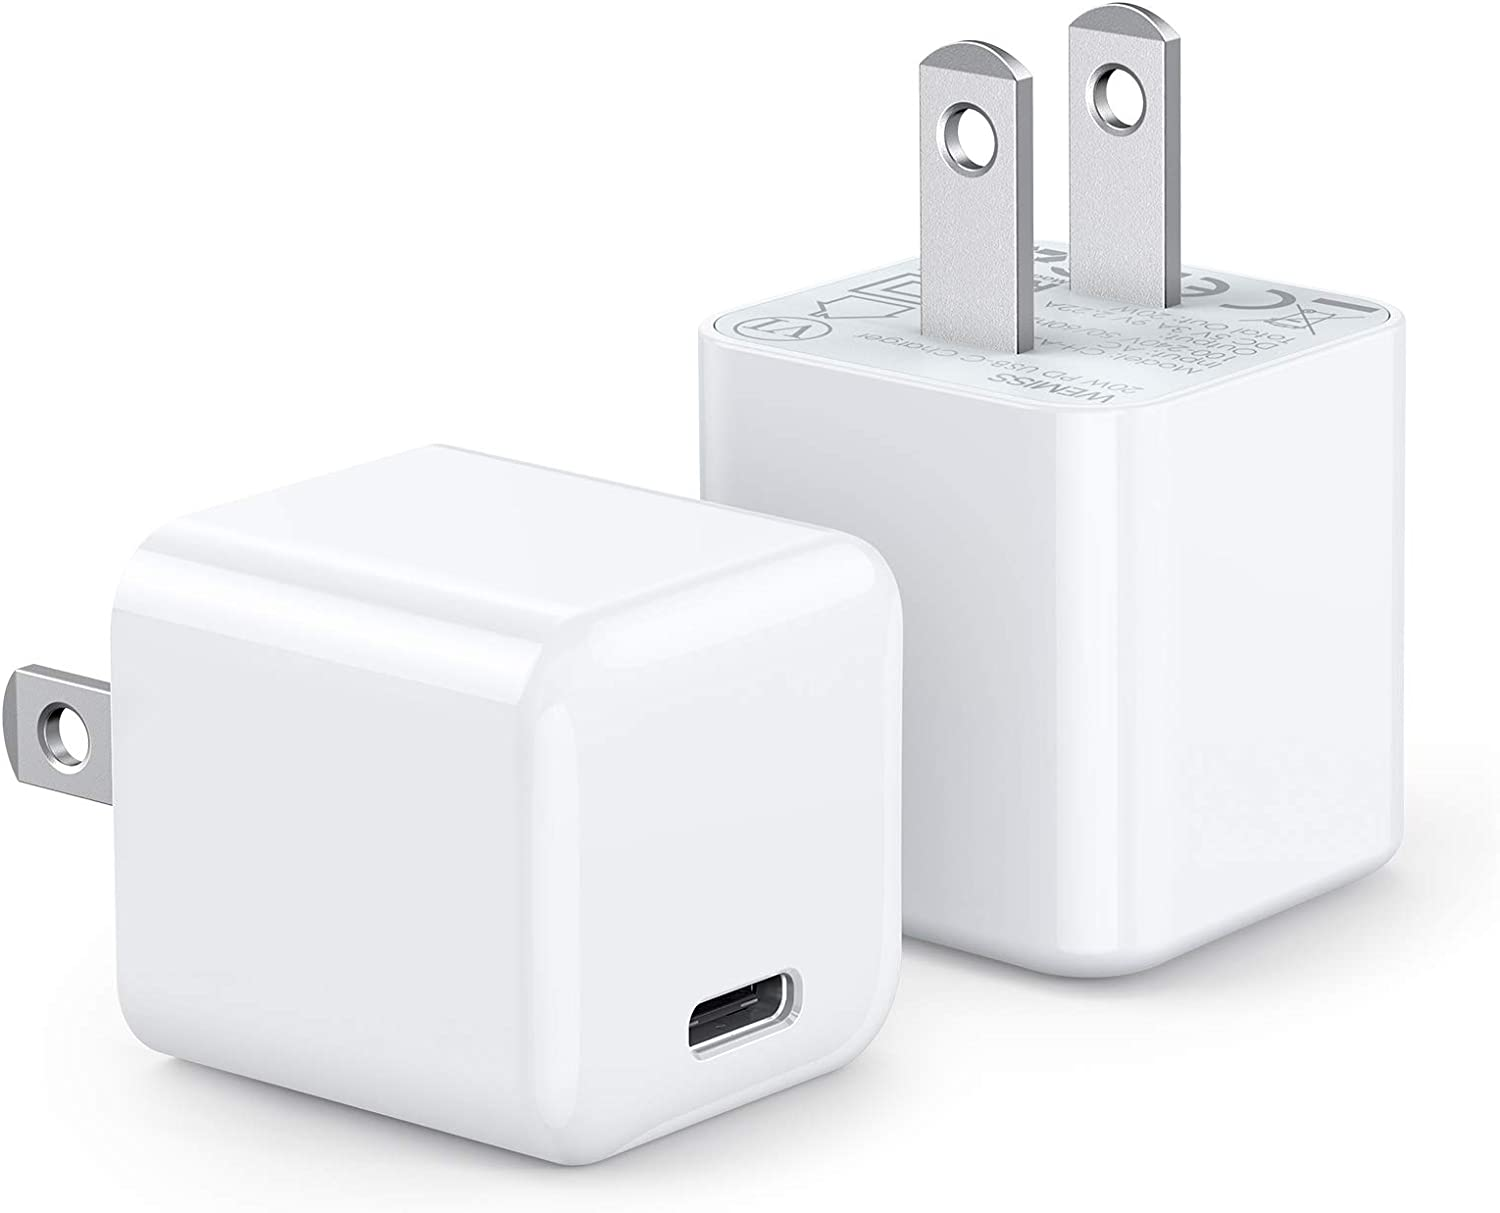 iPhone Fast Charger, WEMISS 2-Pack Mini 20W USB C Charger, Durable Compact PD Charger for iPhone 12/12 Pro/12 ProMax, 11/11 Pro/ 11 ProMax/XR/XS/X, Galaxy S10, iPad Pro (White 2)